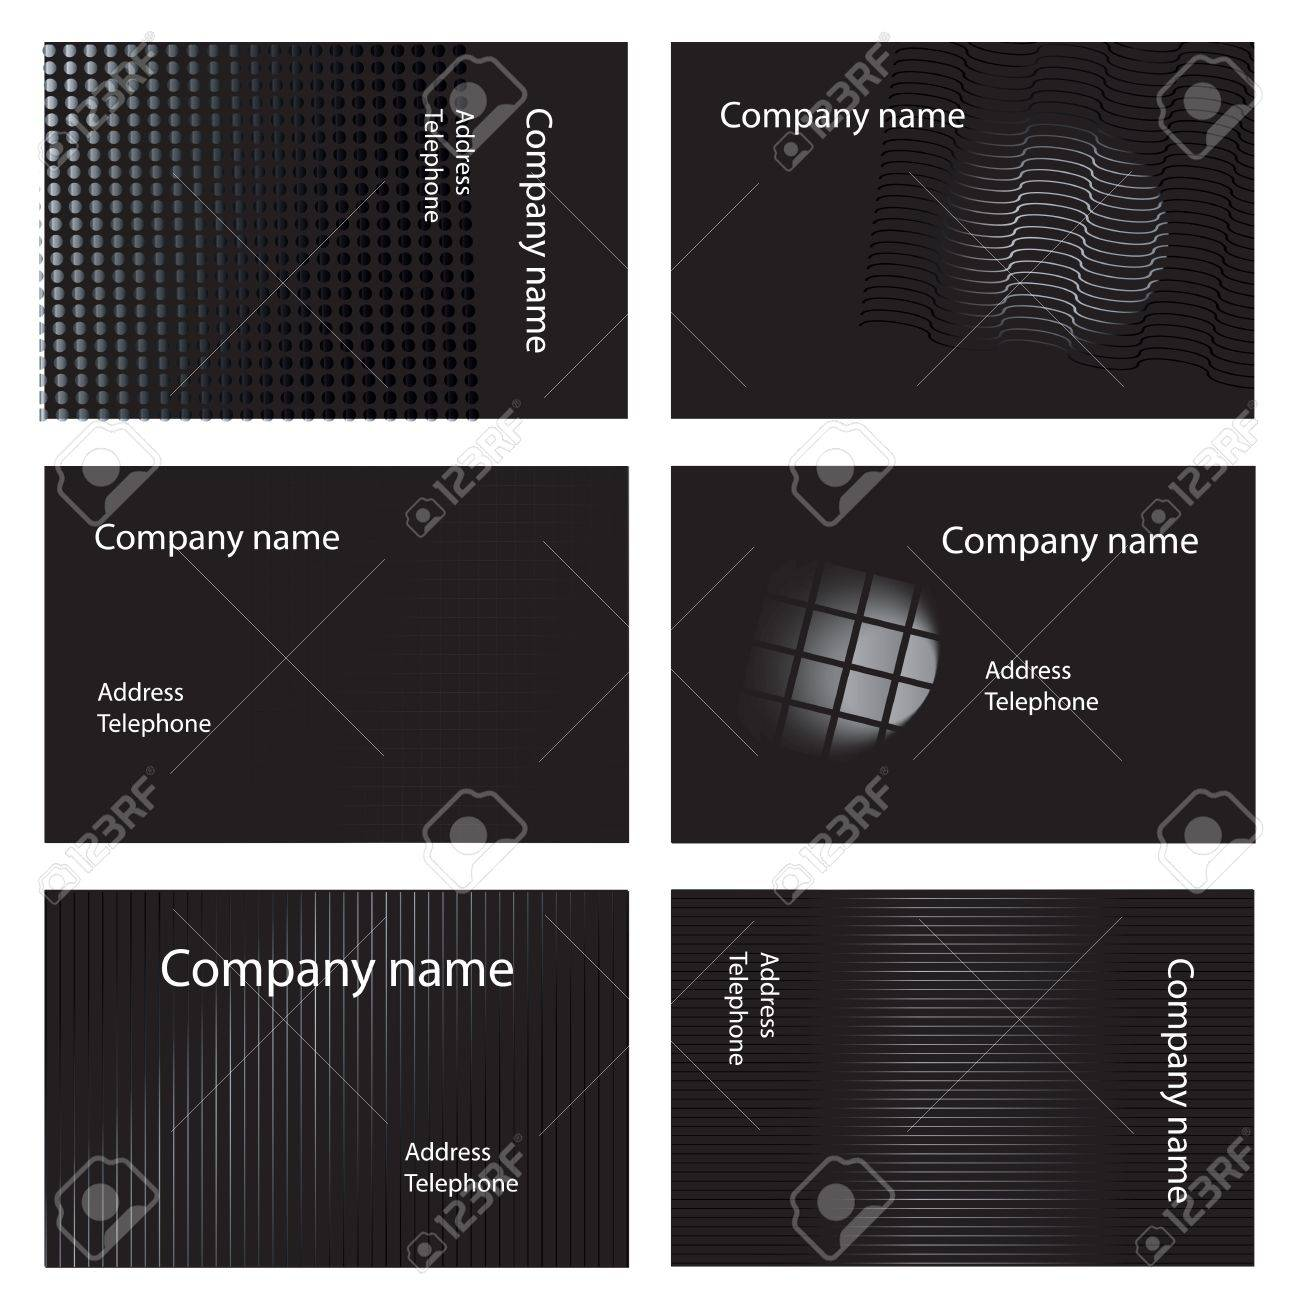 Six White And Black Business Card Designs Royalty Free Cliparts ...